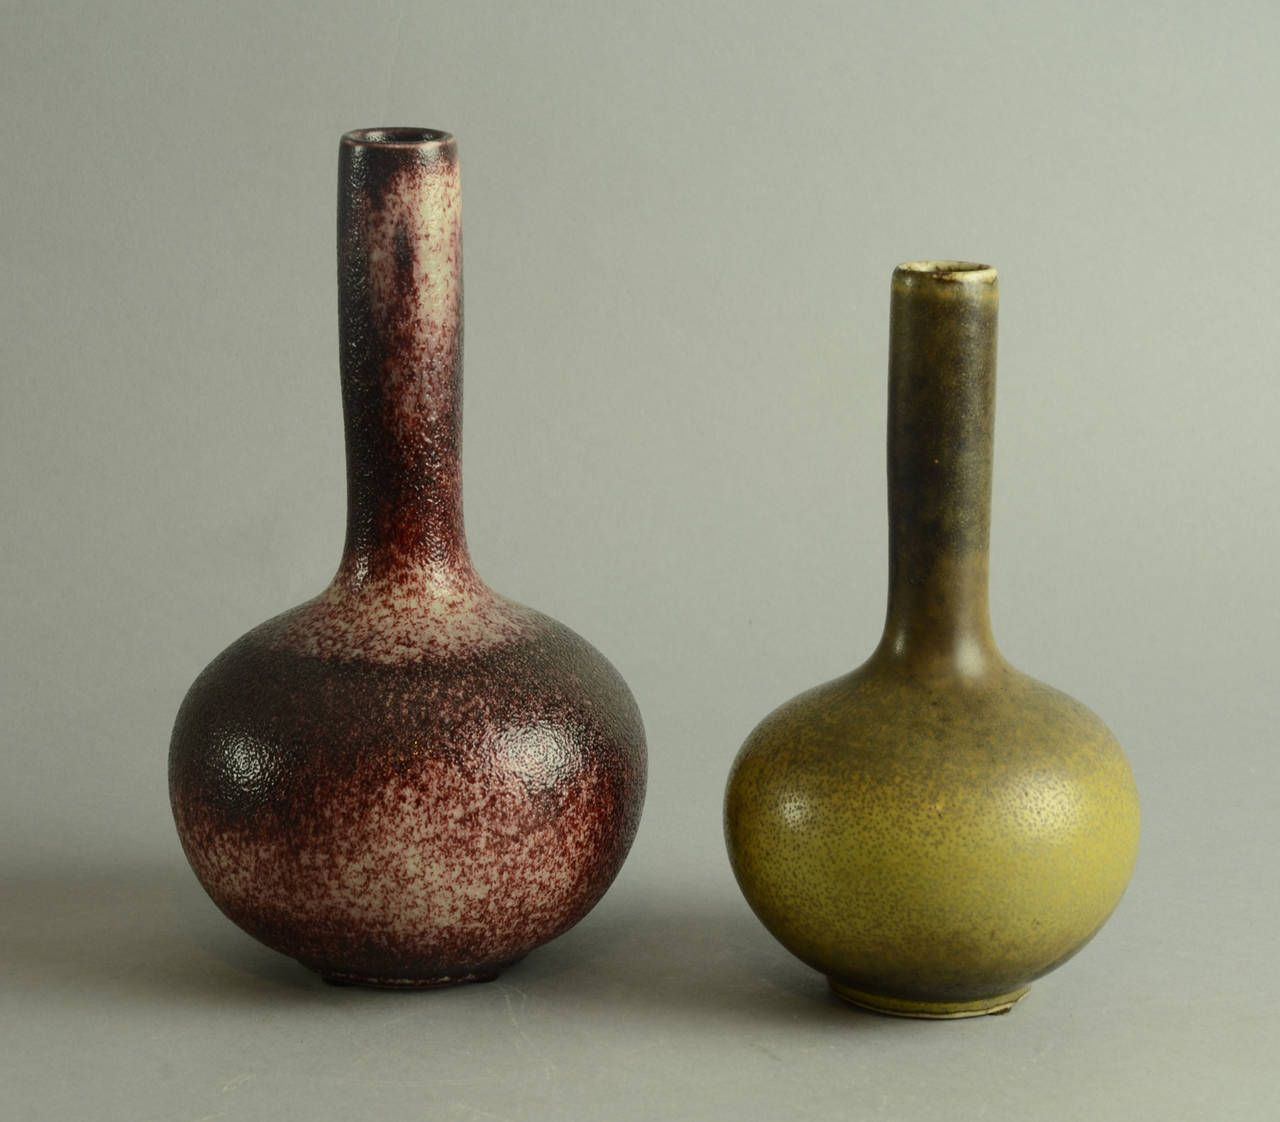 royal copenhagen vases for sale of axel salto for royal copenhagen two gourd vases stoneware bottle throughout axel salto for royal copenhagen two gourd vases stoneware bottle vase with orange